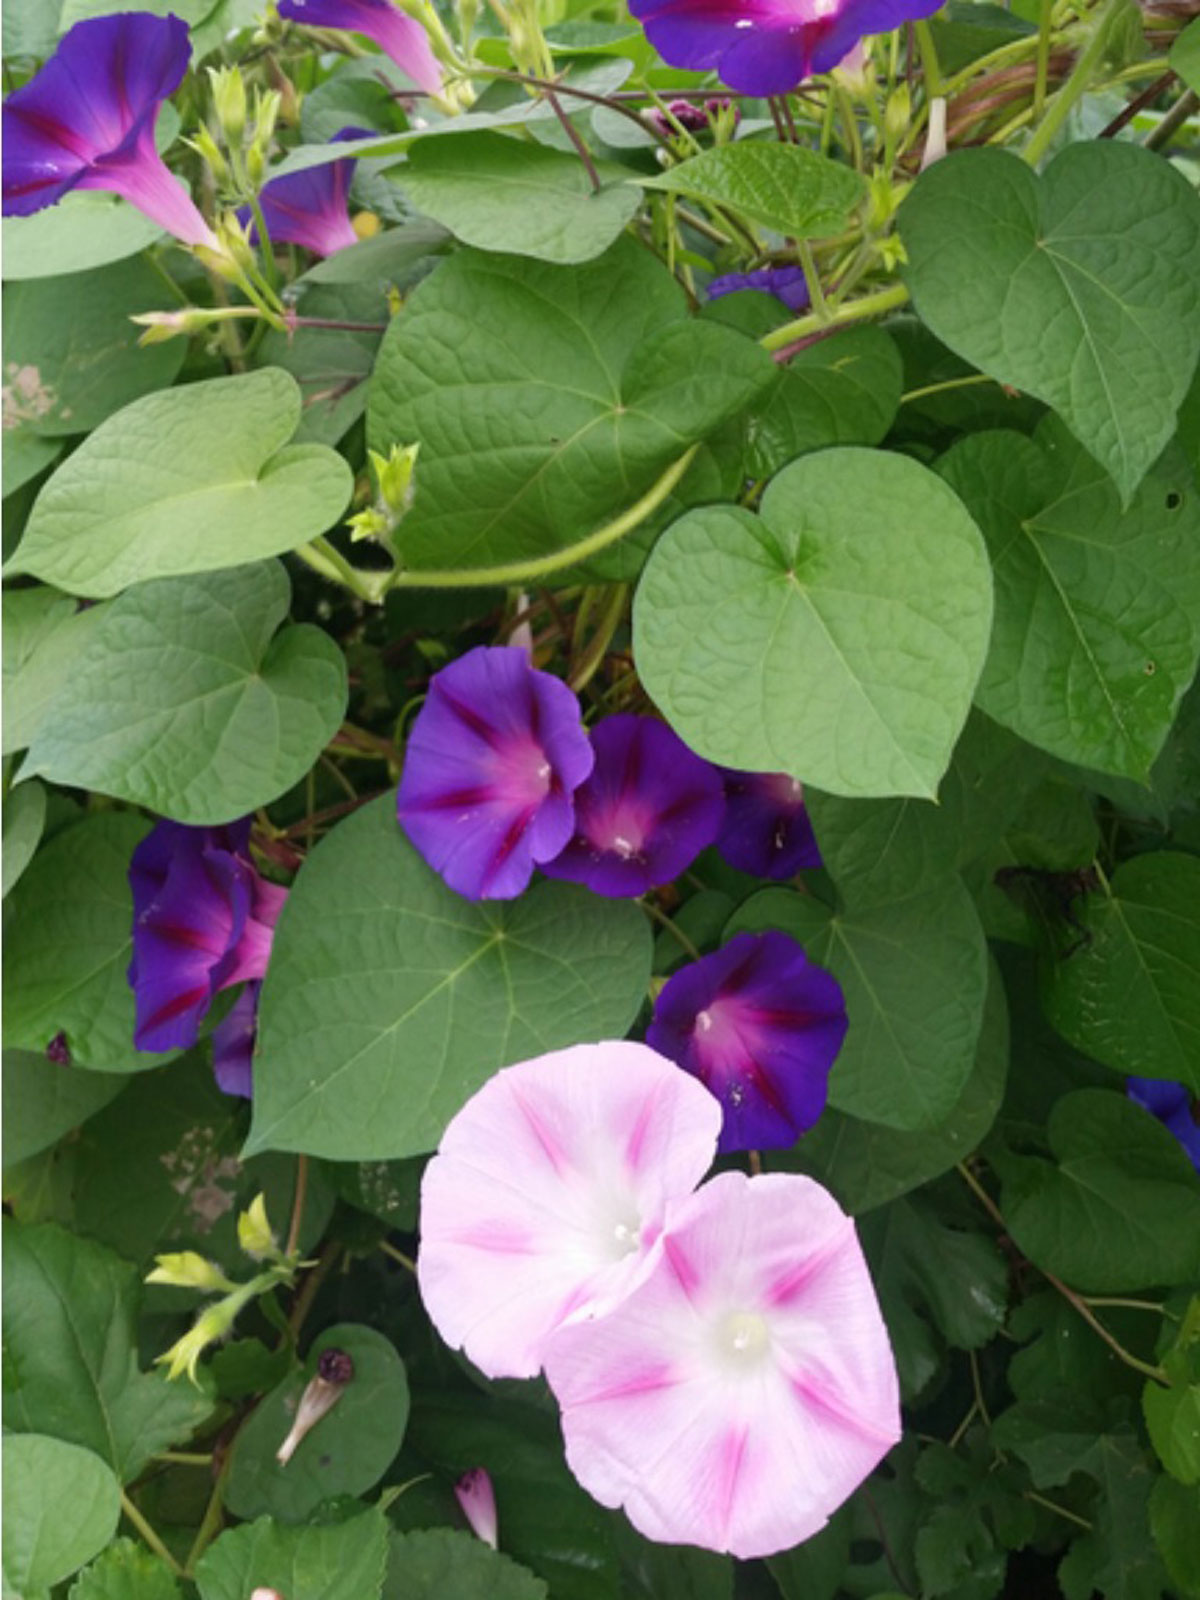 Pruning Morning Glory Vines How And When To Cut Morning Glories